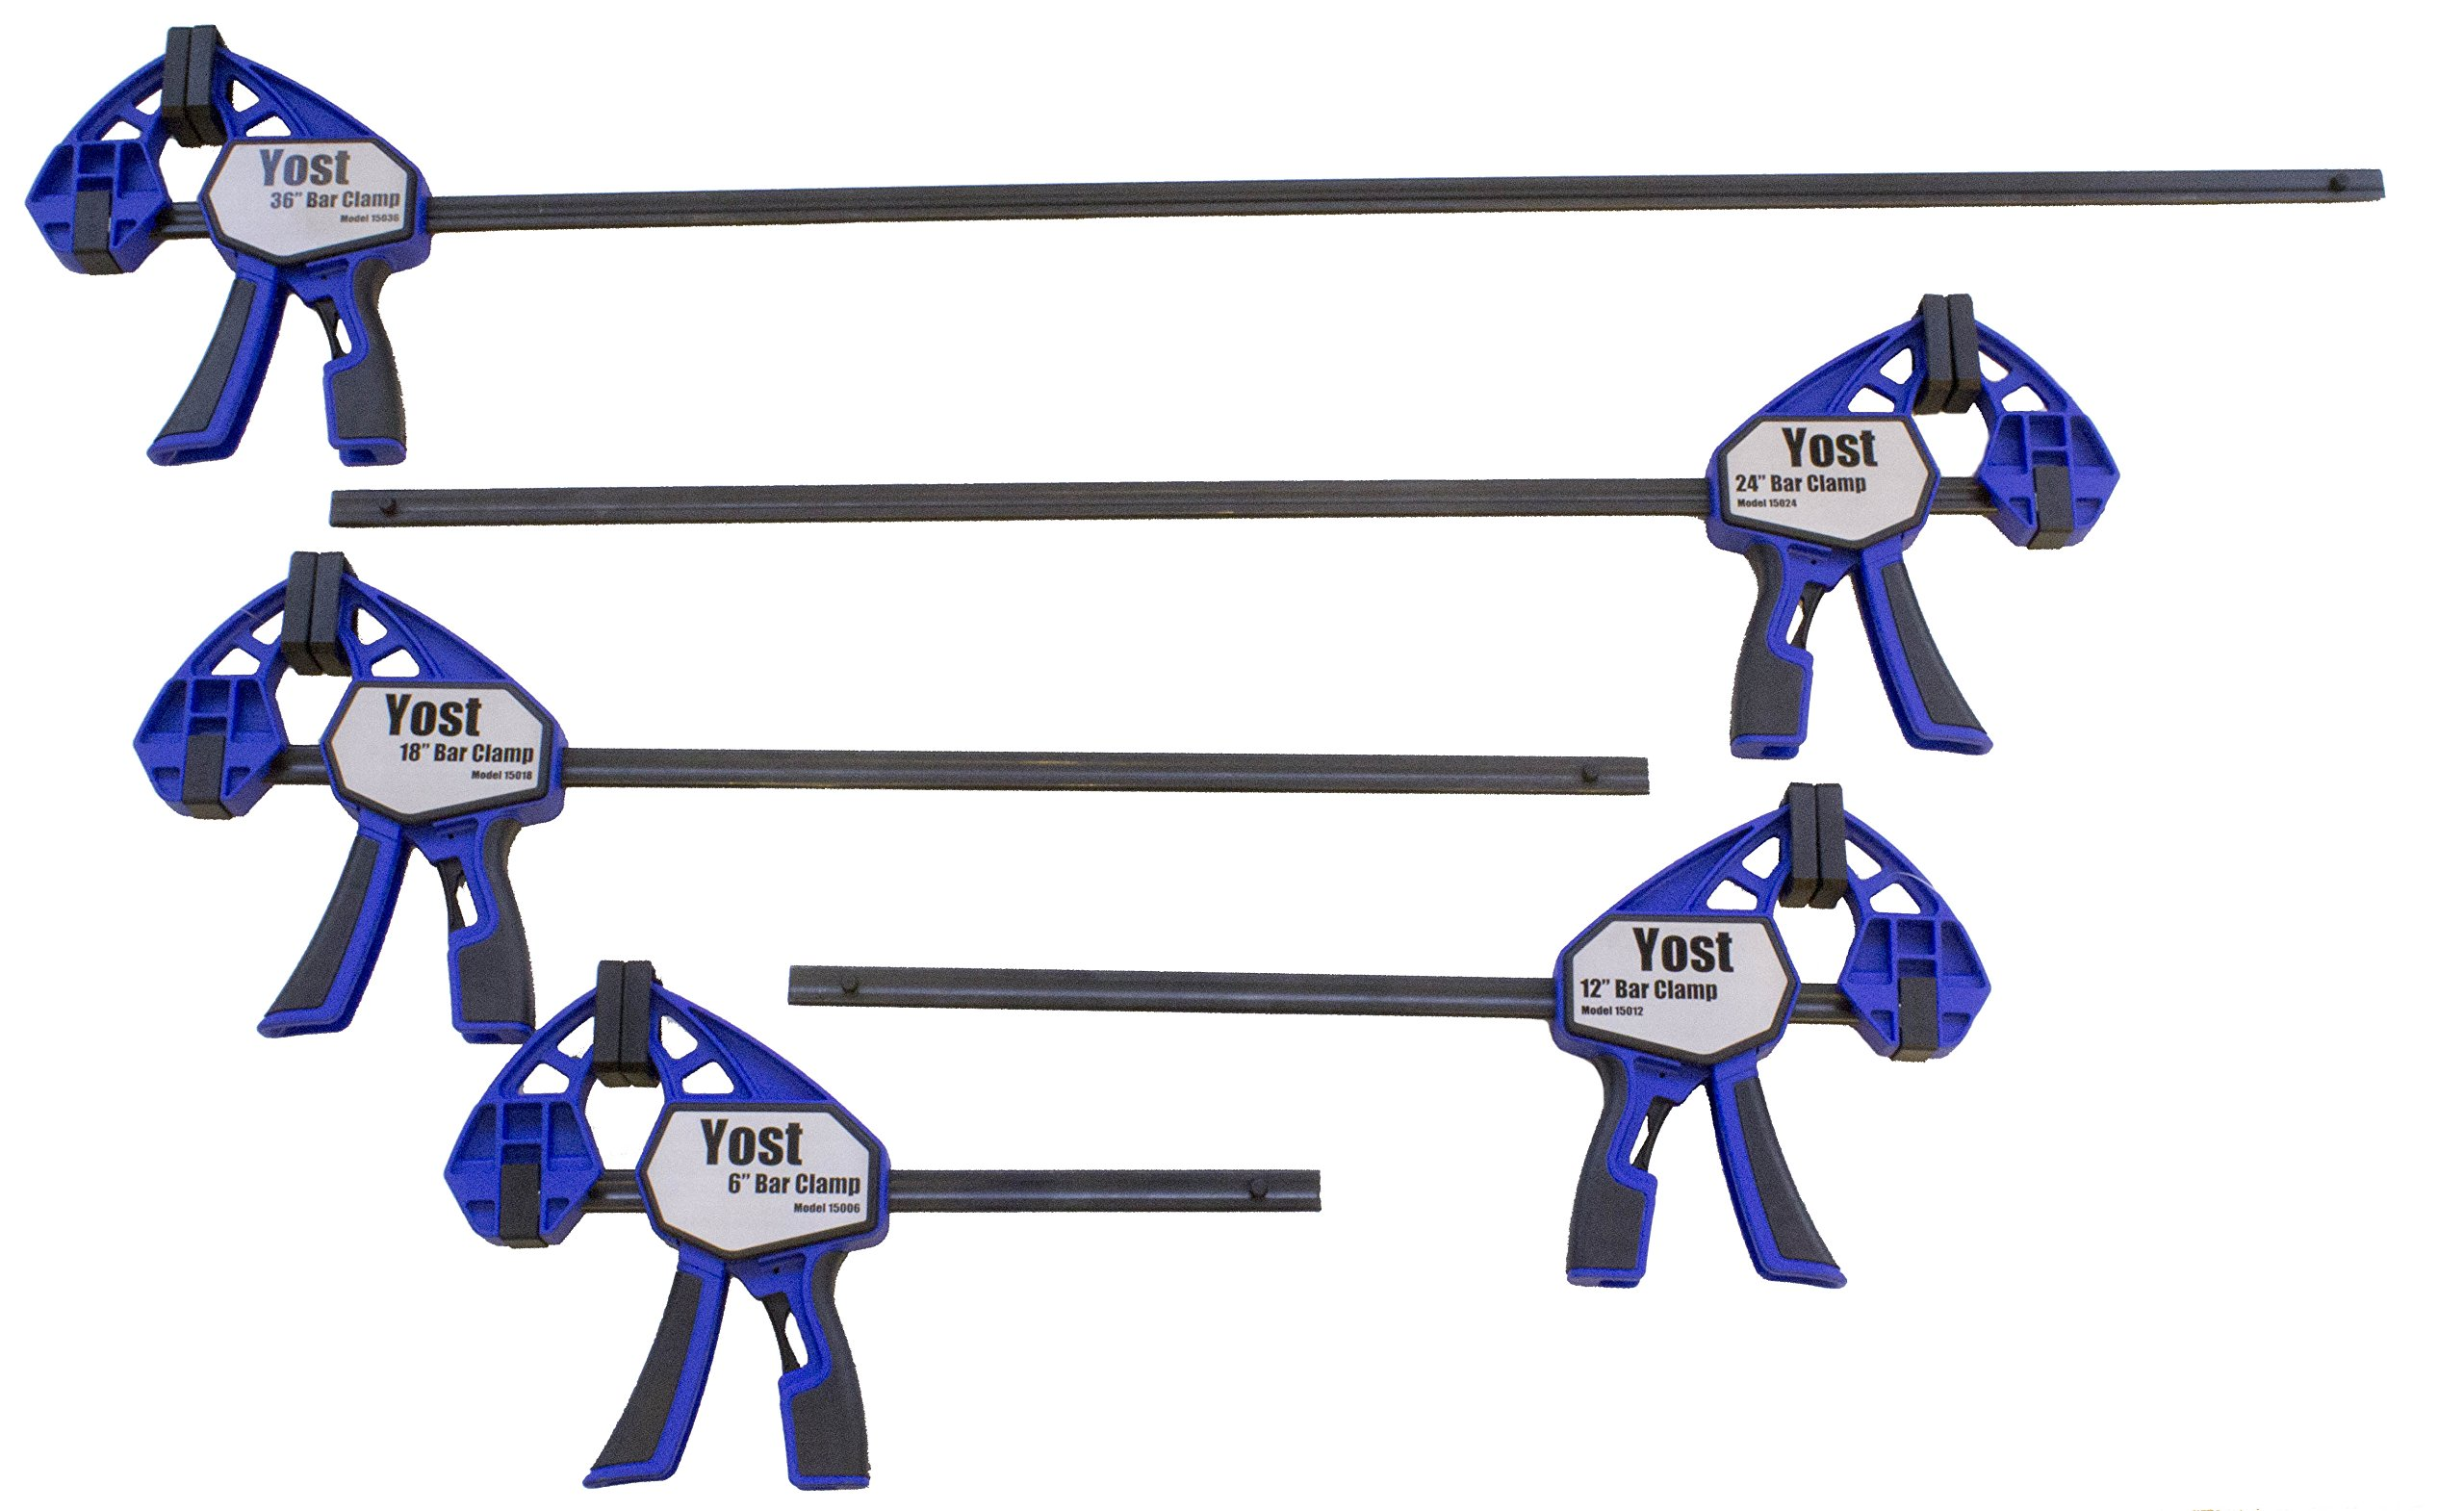 Yost Tools 15000-10 Yost 15000 Series bar Clamp Set (Pack of 10) by Yost Tools